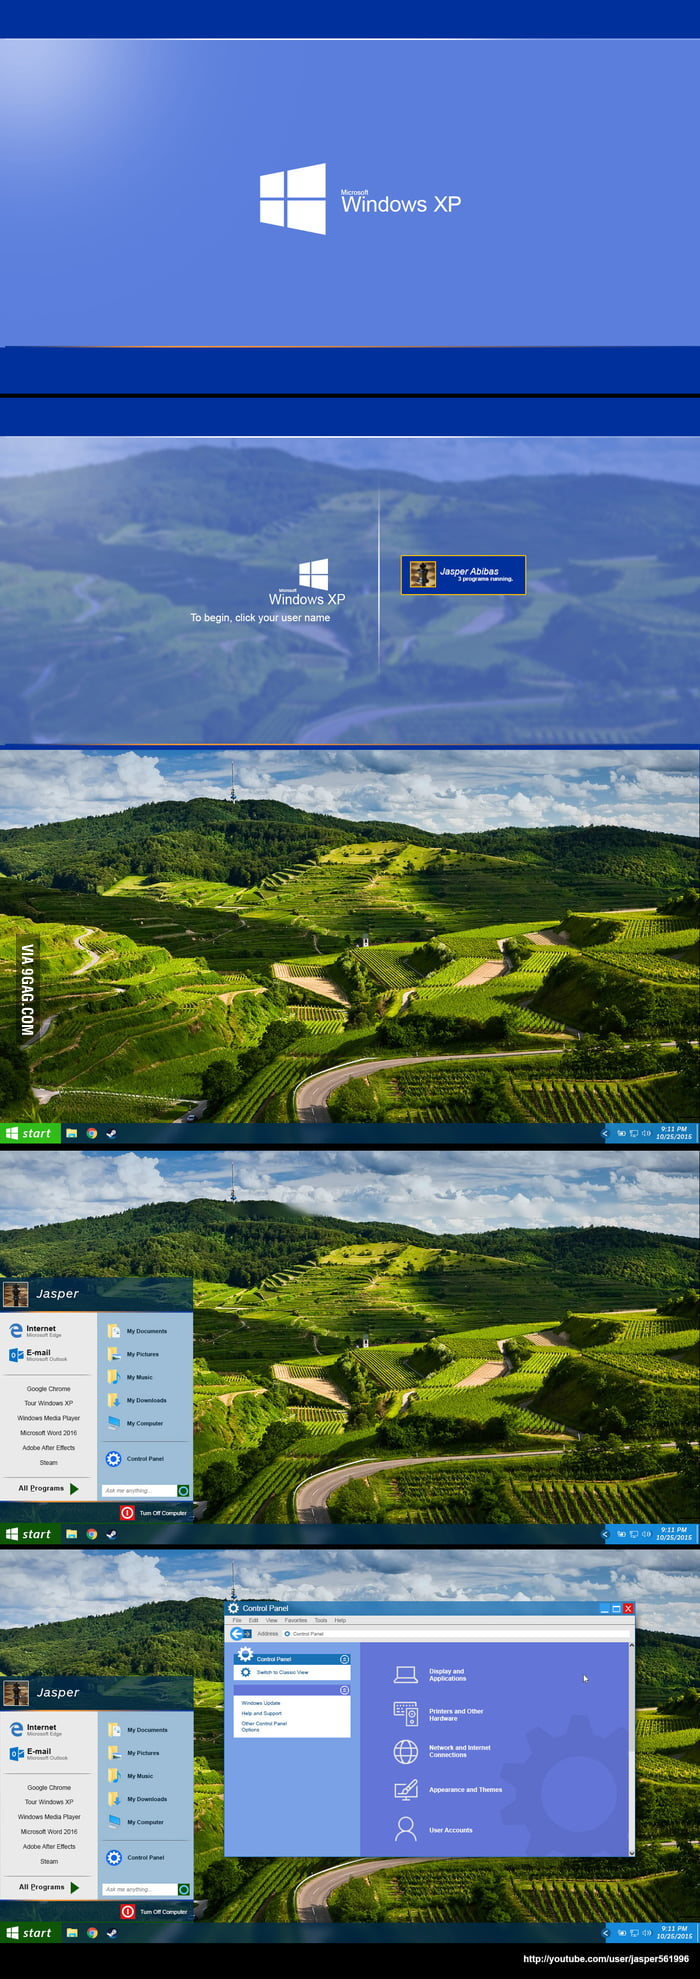 If Windows XP was released in 2015... created by me! :D I need a life